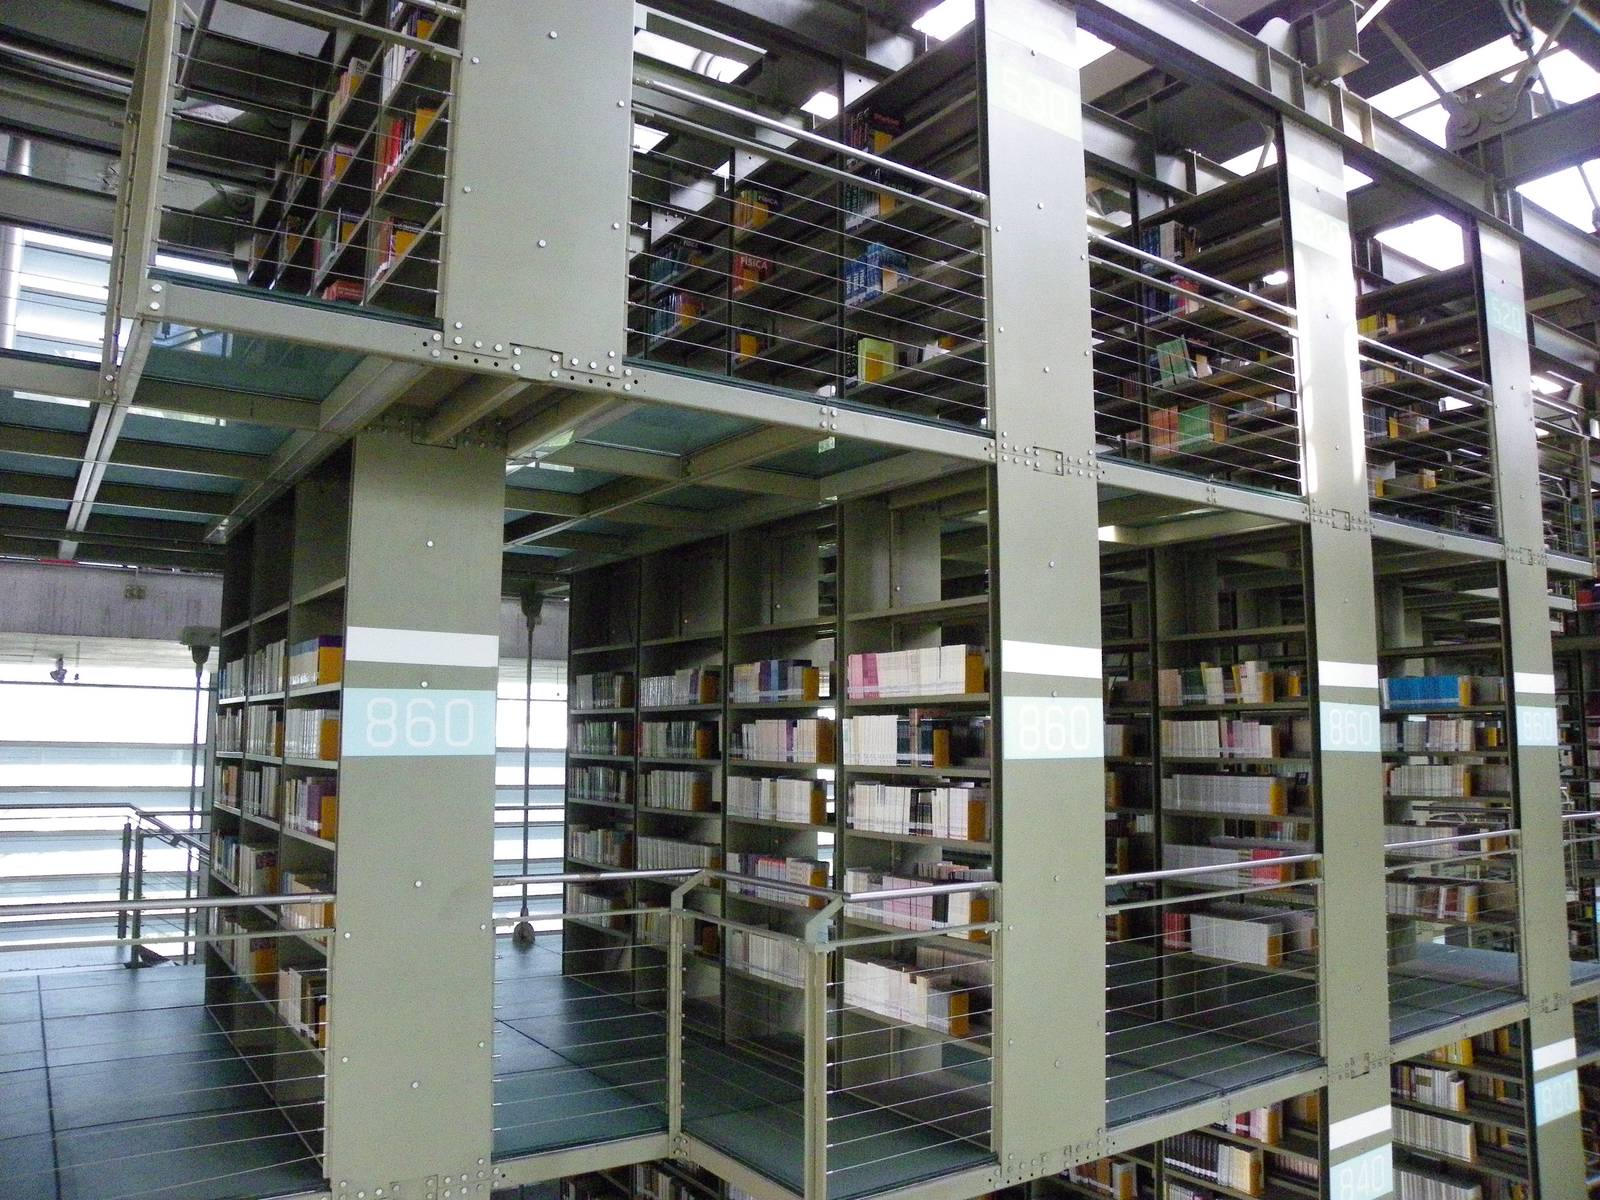 biblioteca vasconcelos3 Biblioteca Vasconcelos   Public Library in Mexico City